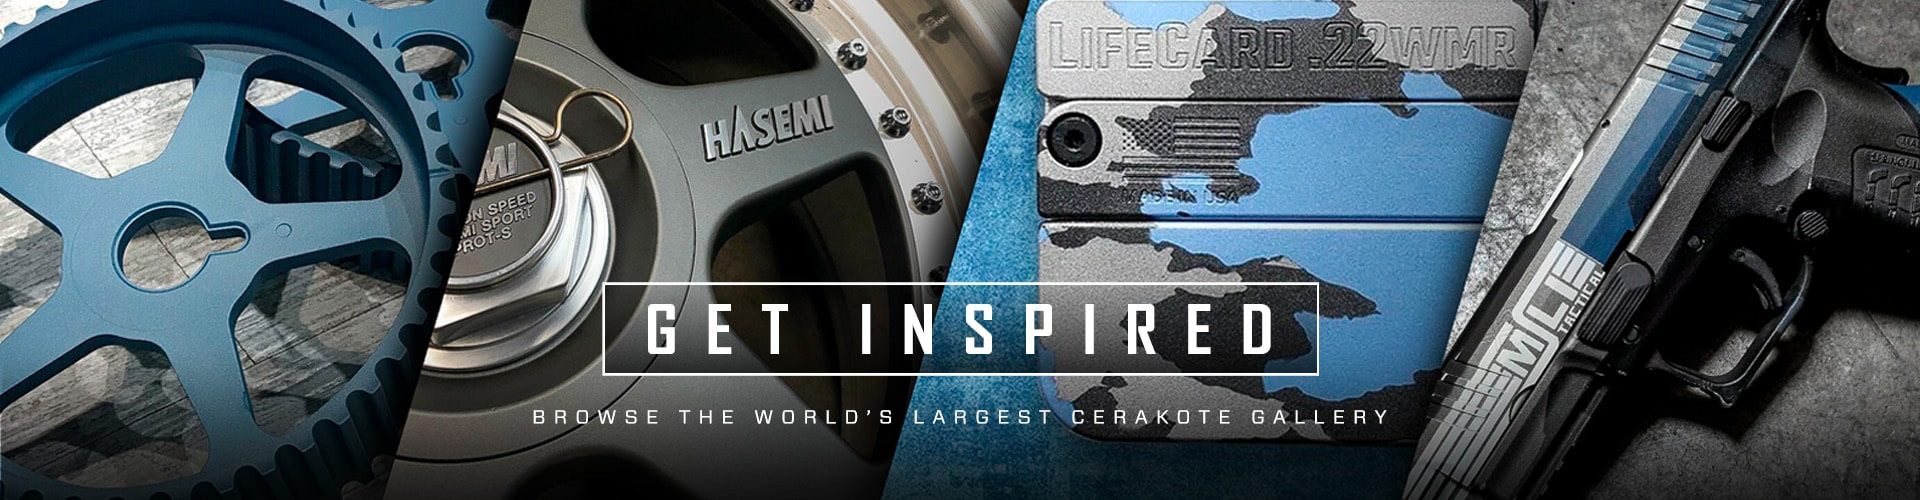 Cerakote Firearm Coatings, Get Inspired. Browse the world's largest cerakote gallery.